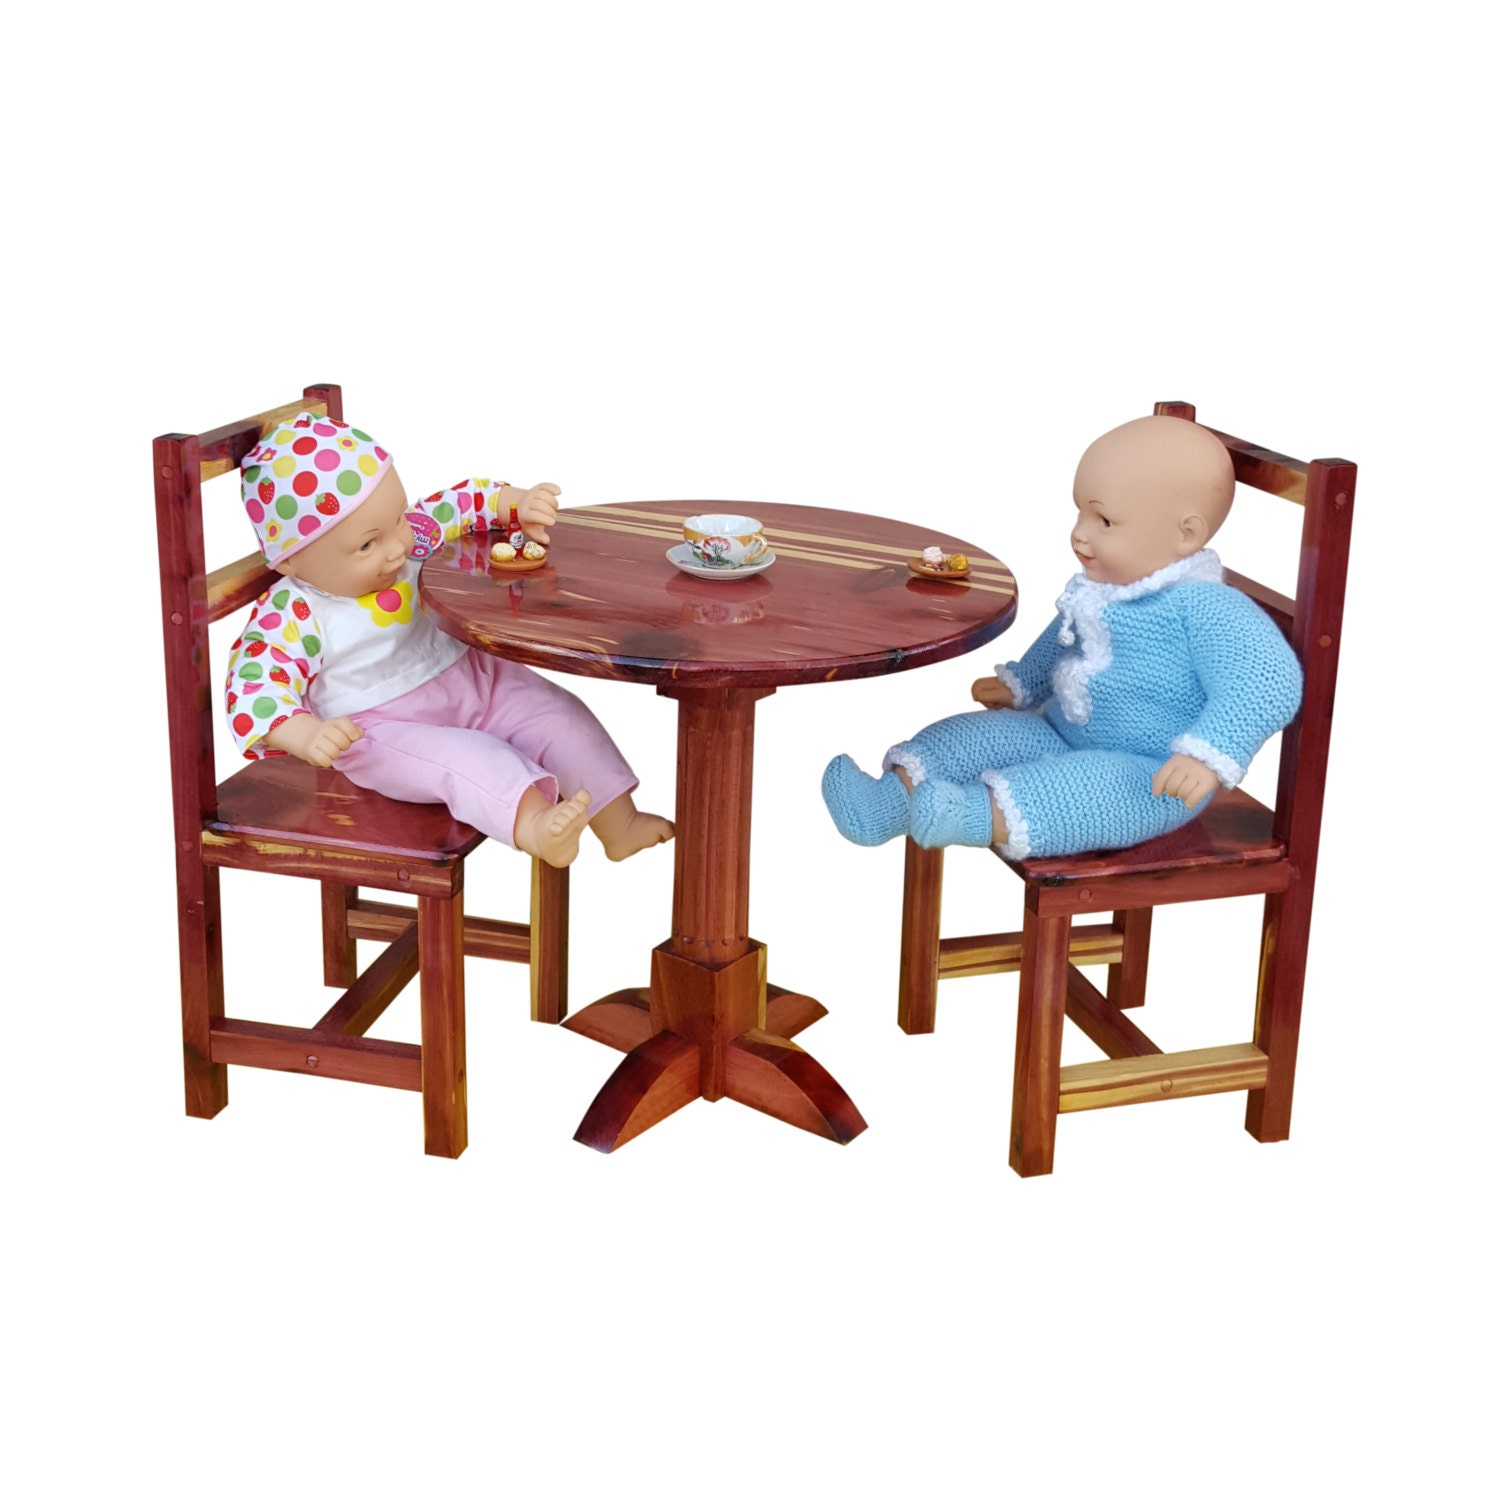 Table and 2 chairs set dolls furniture AG American doll